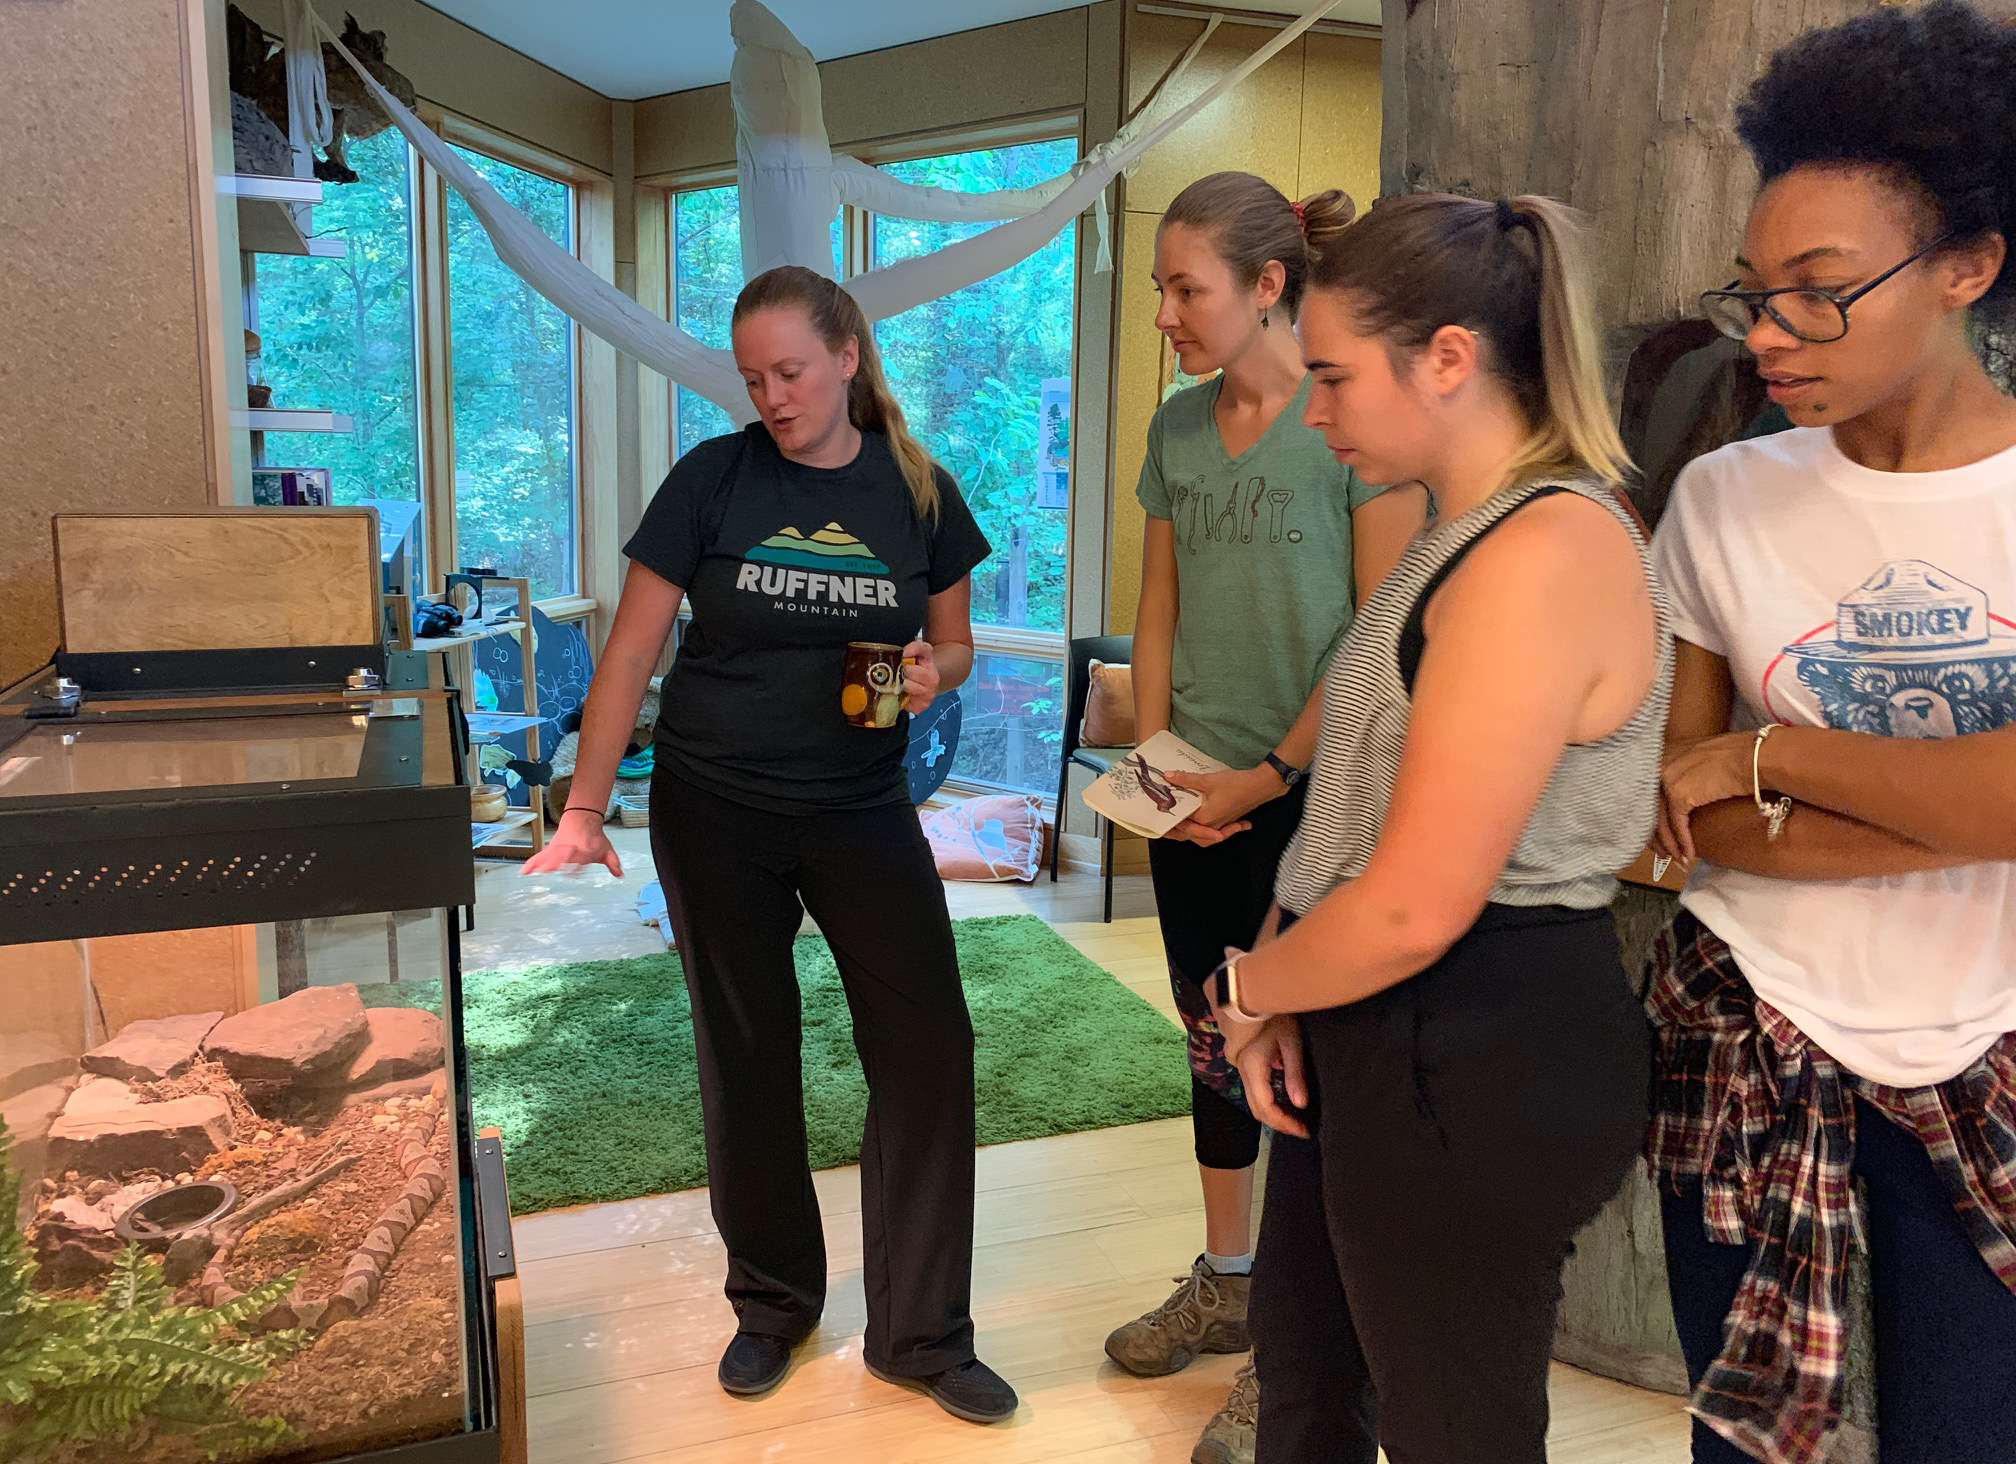 Staff review the native snakes on exhibit, including the copperhead. The public can stop by our Nature Center during office hours to learn the differences between our venomous and non-venomous snakes on exhibit by observing their patterns. Say 'hello' to the corn snake, who is often mistaken for the copperhead.